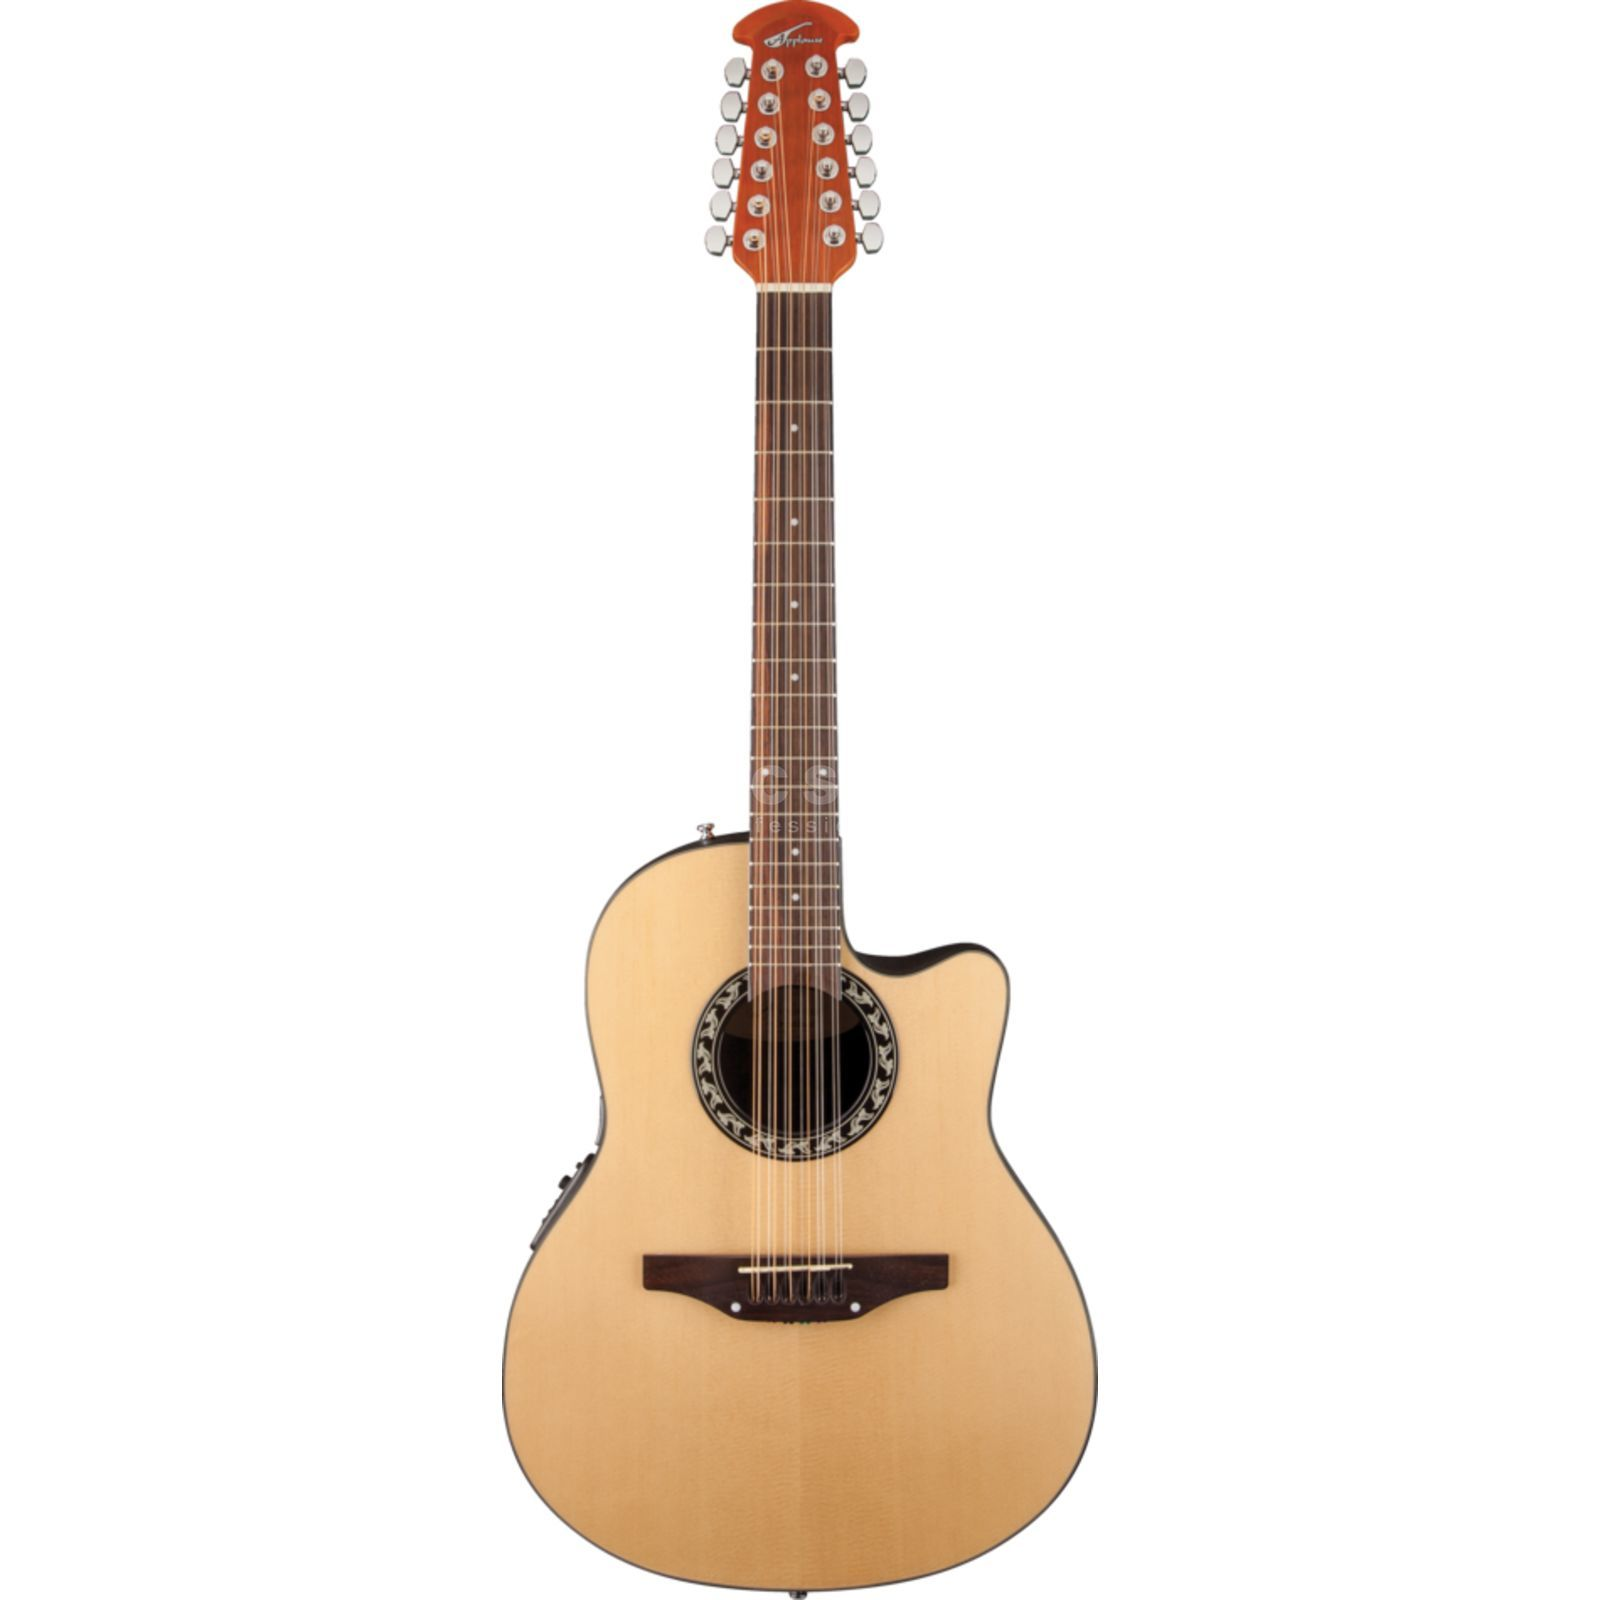 Ovation AB2412-4 Applause Balladeer NT 12-String, Natural Produktbild